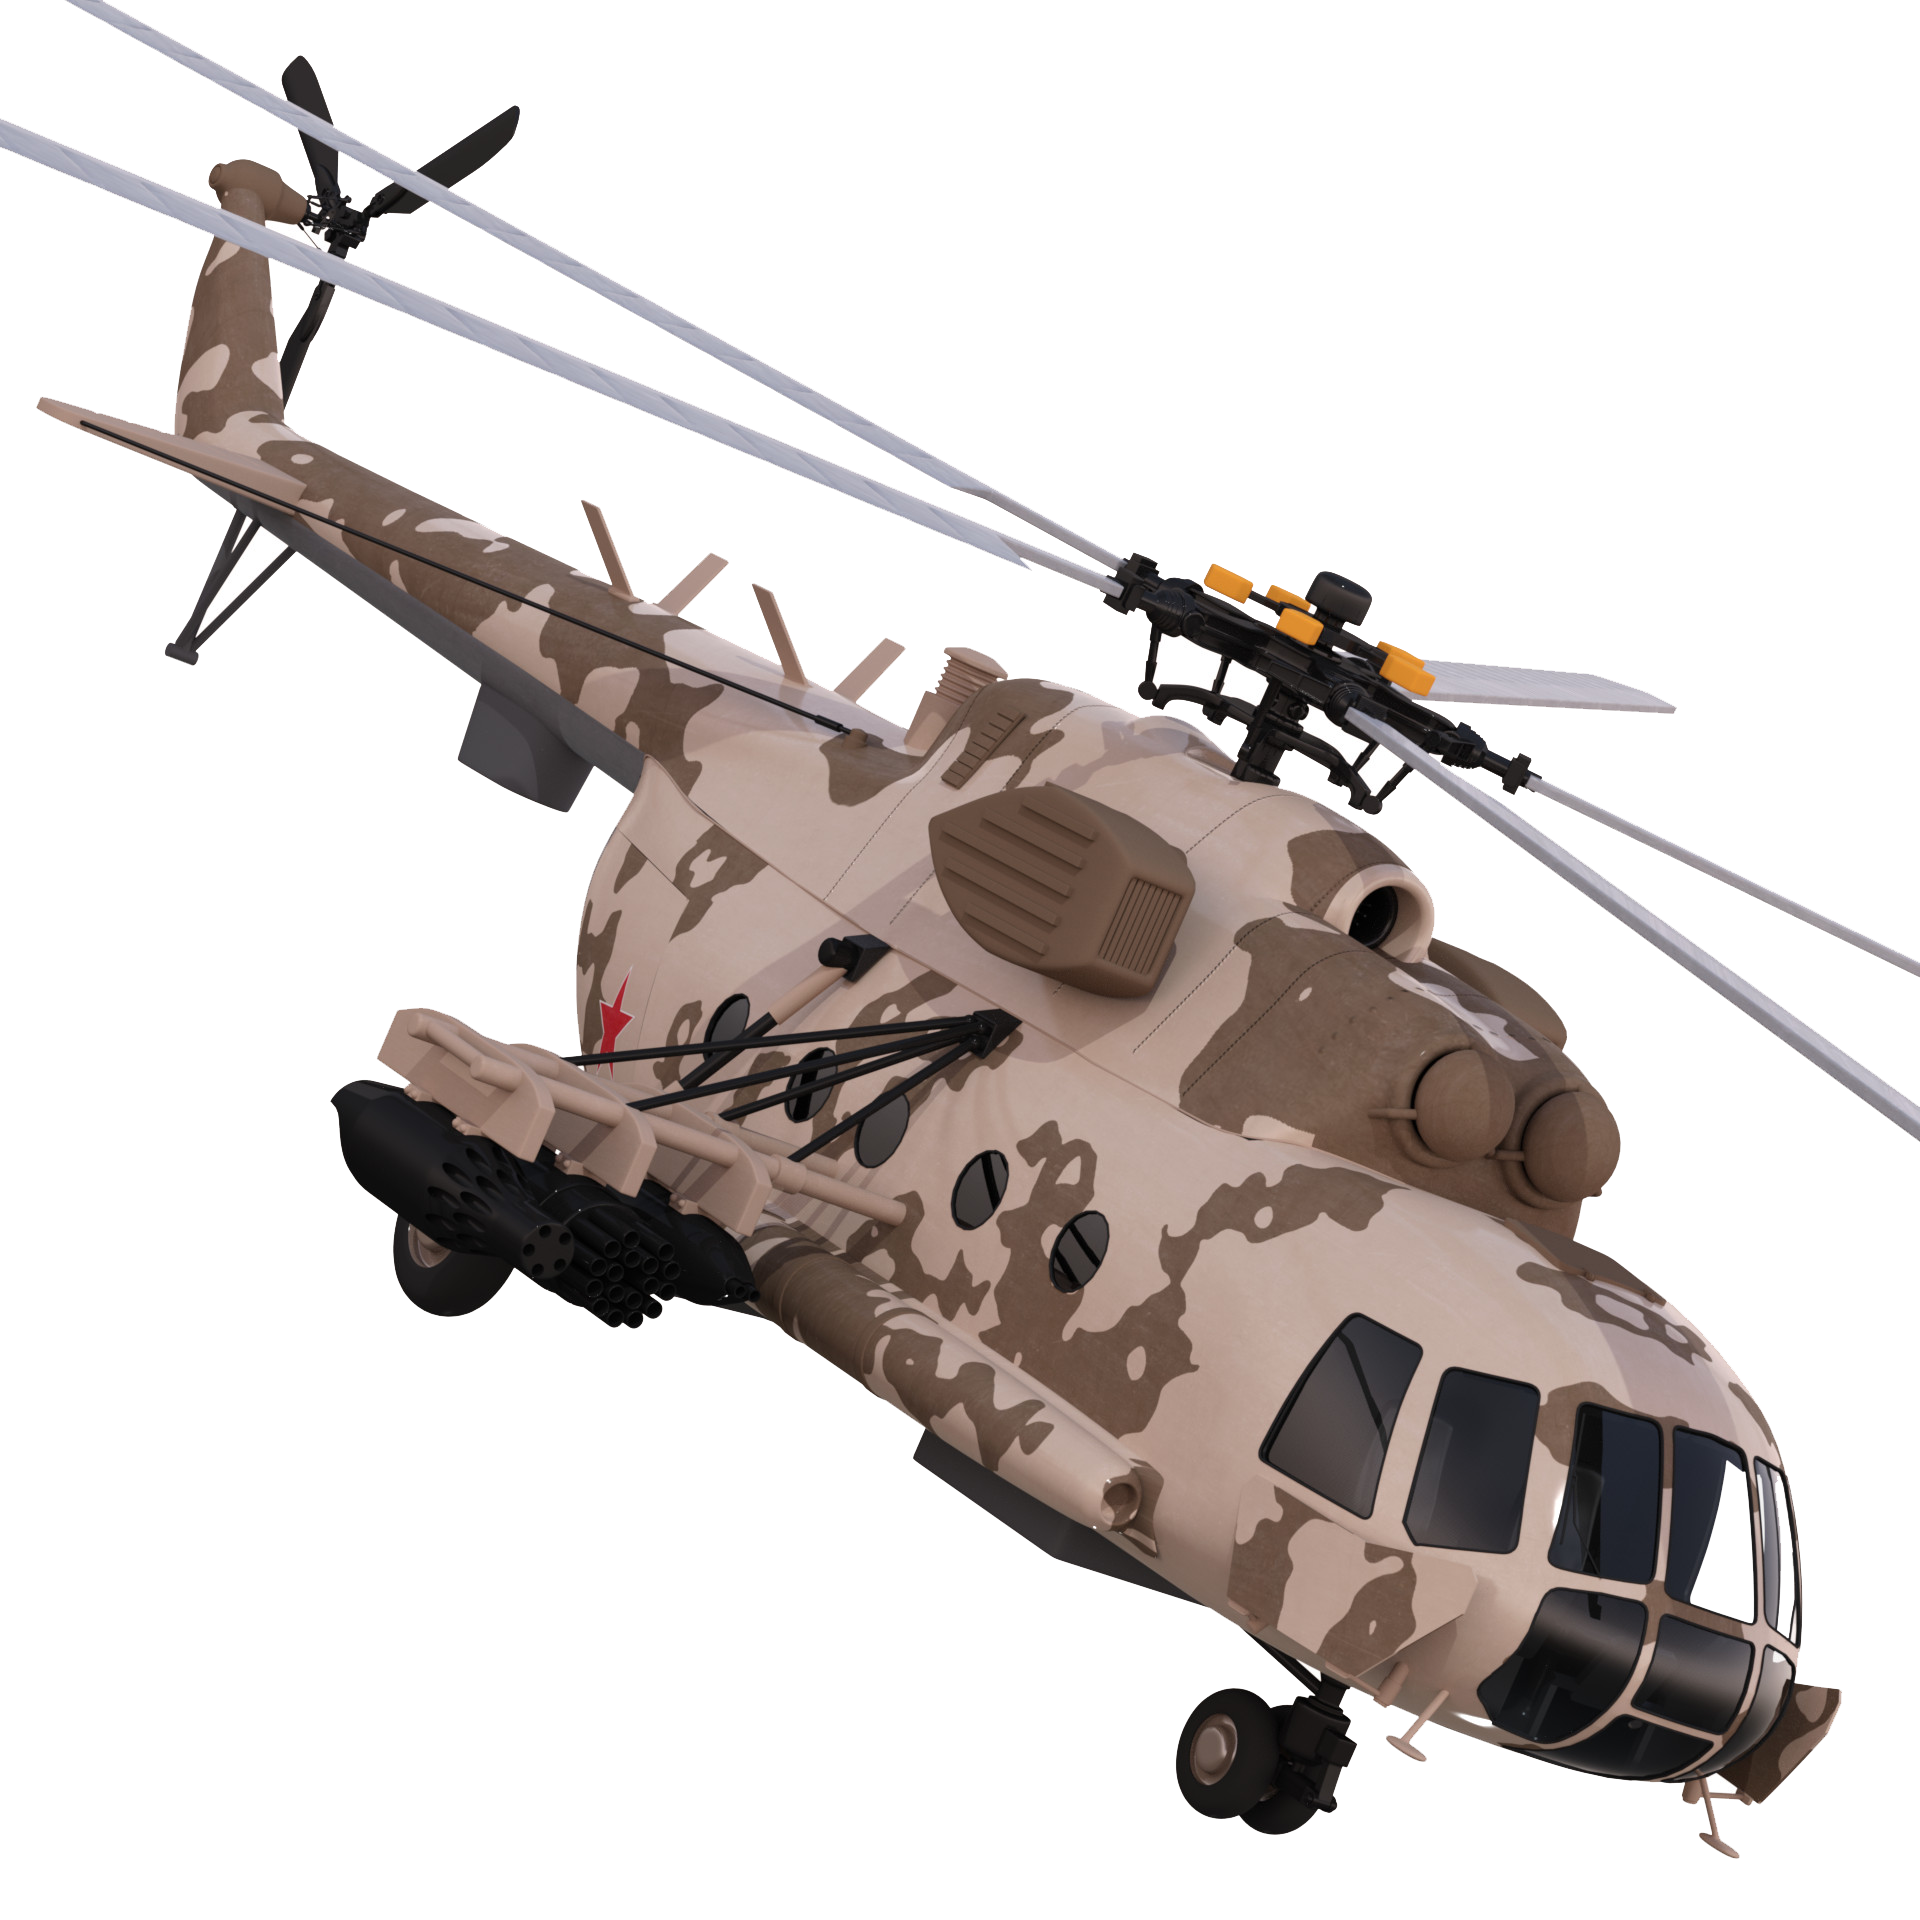 Crashing helicopter png